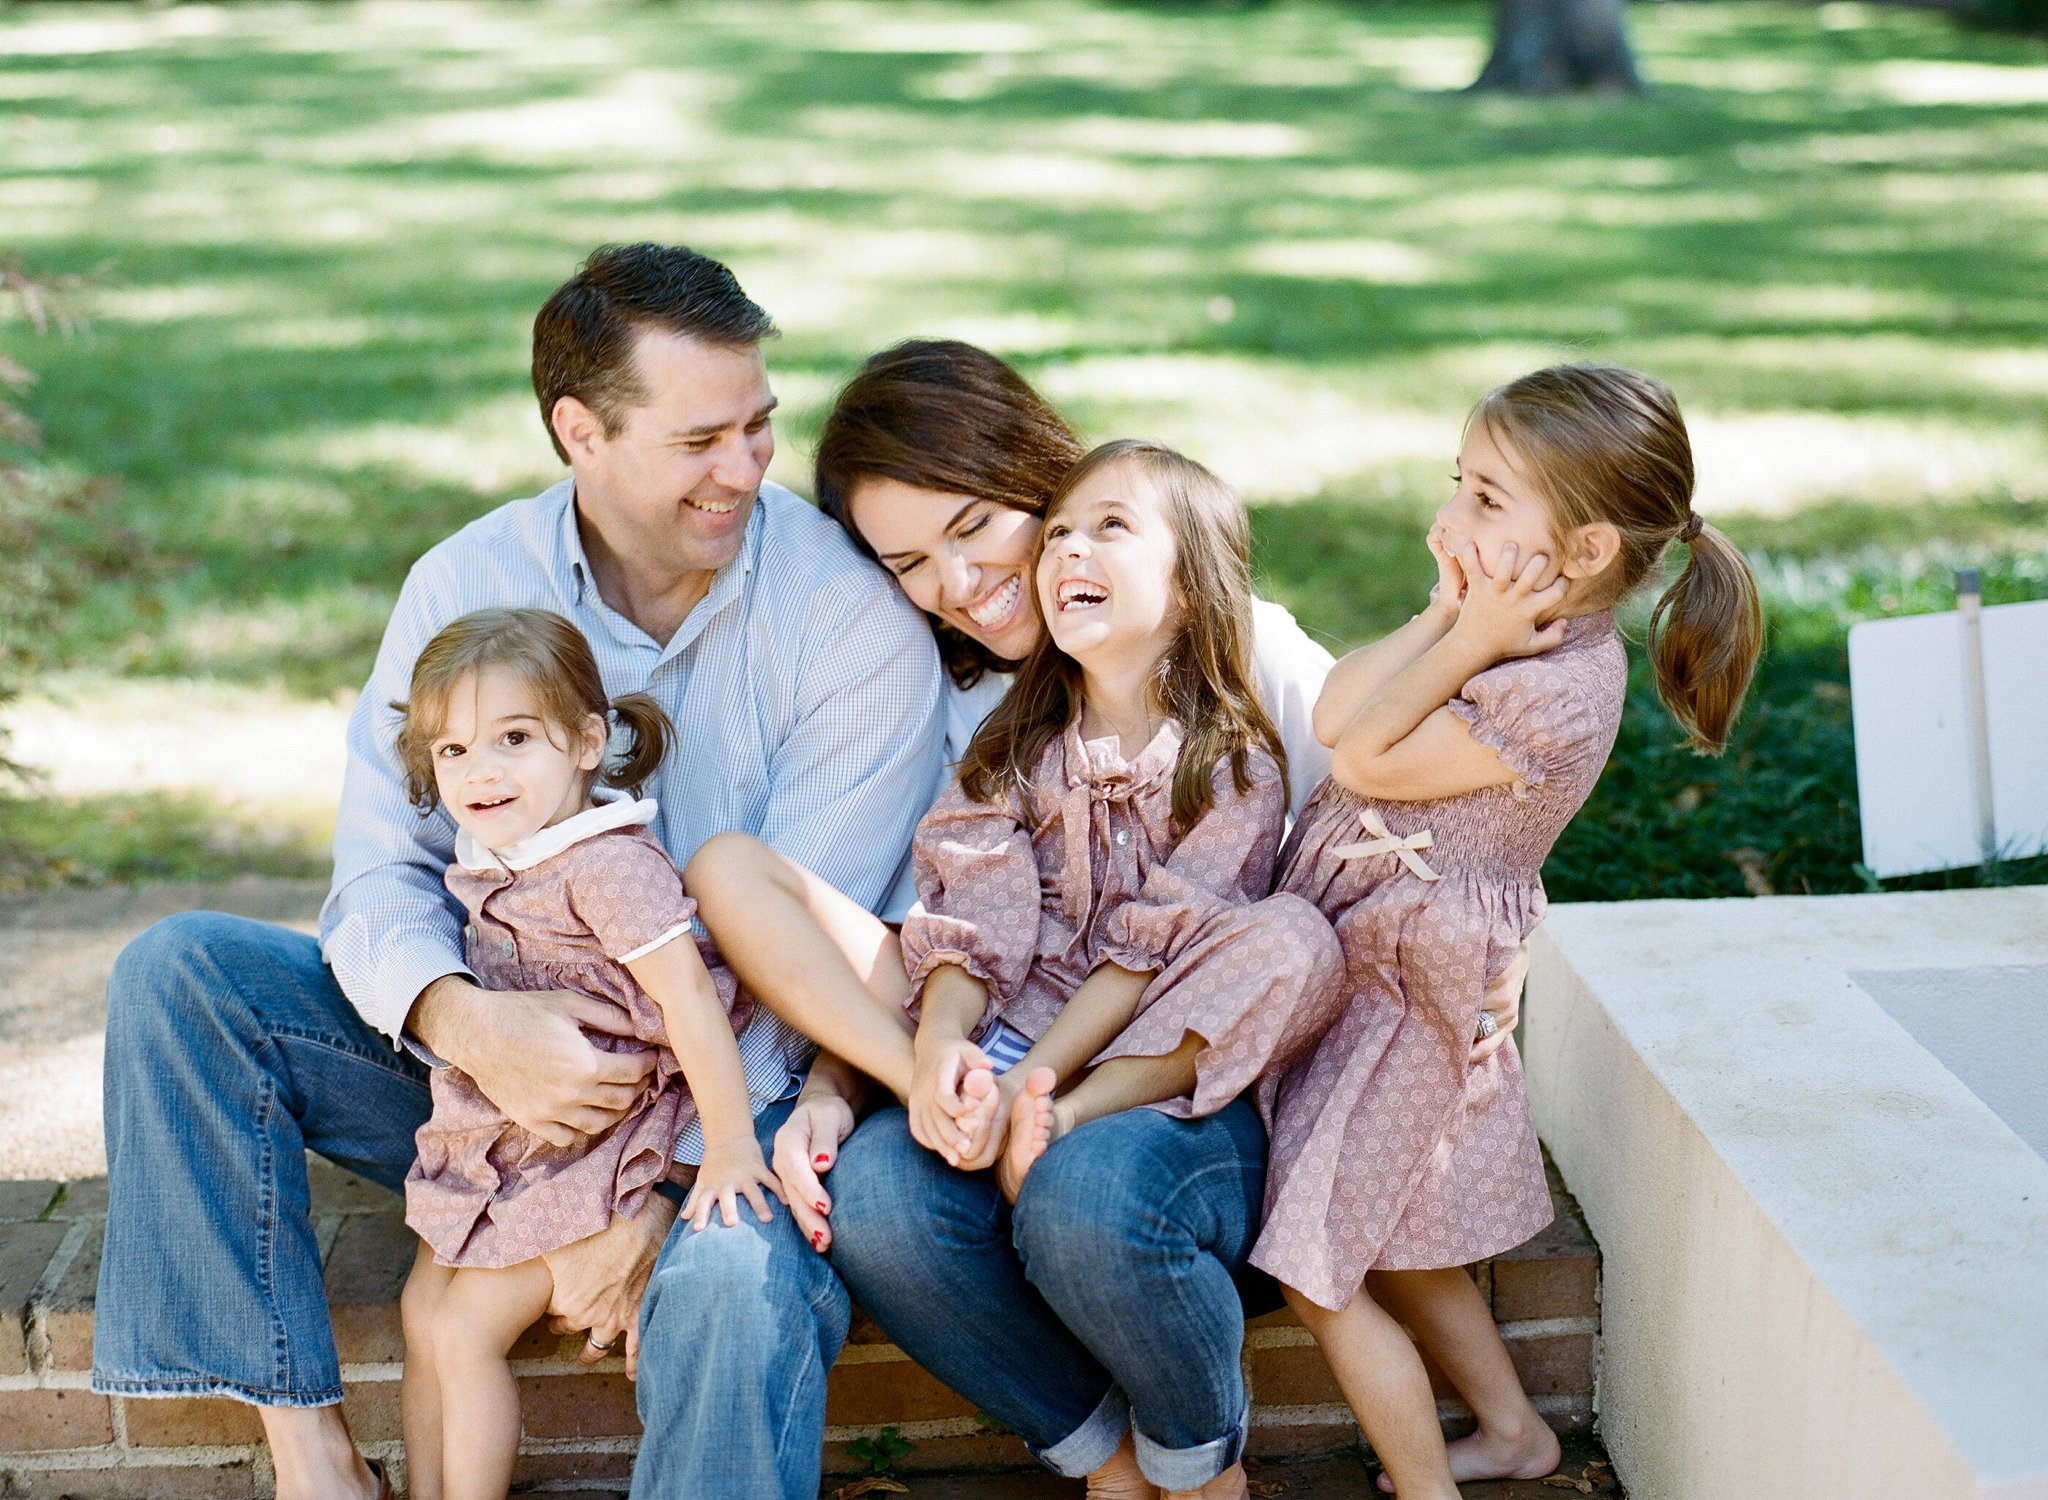 tallahassee family photographer shannon griffin photography_0034.jpg